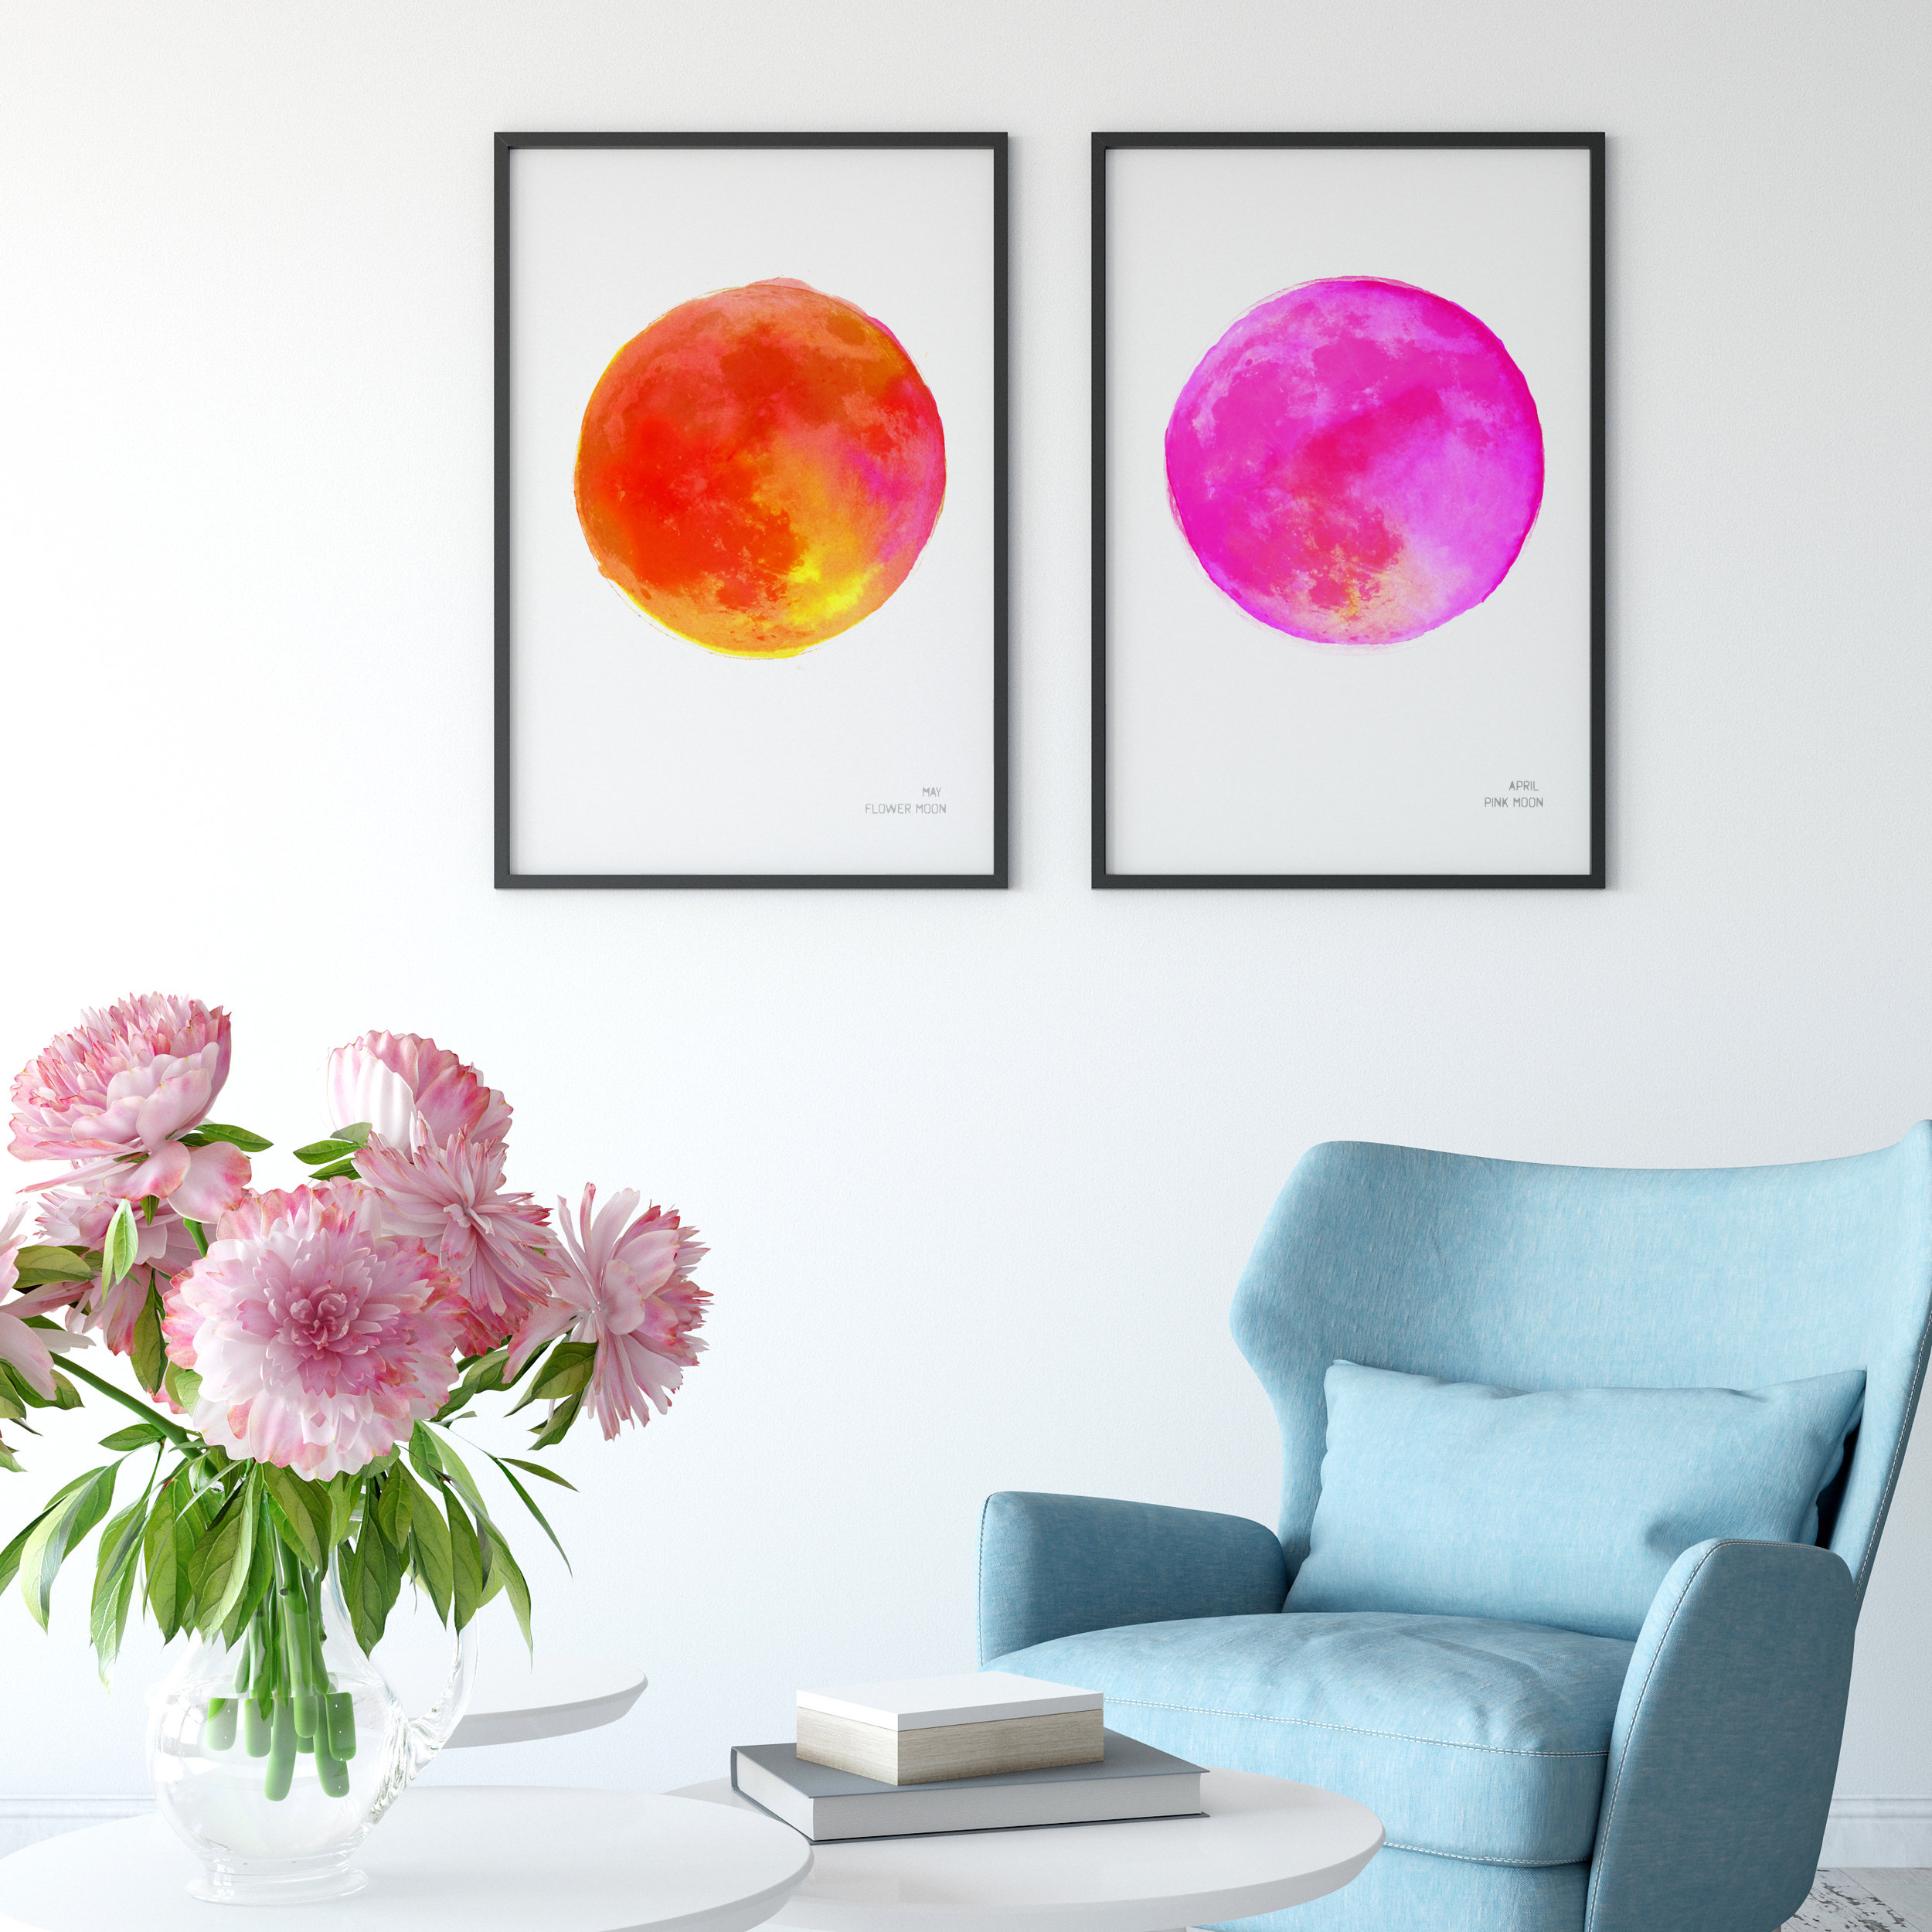 Orange and Pink May and April Full Moon Art Prints framed on the wall